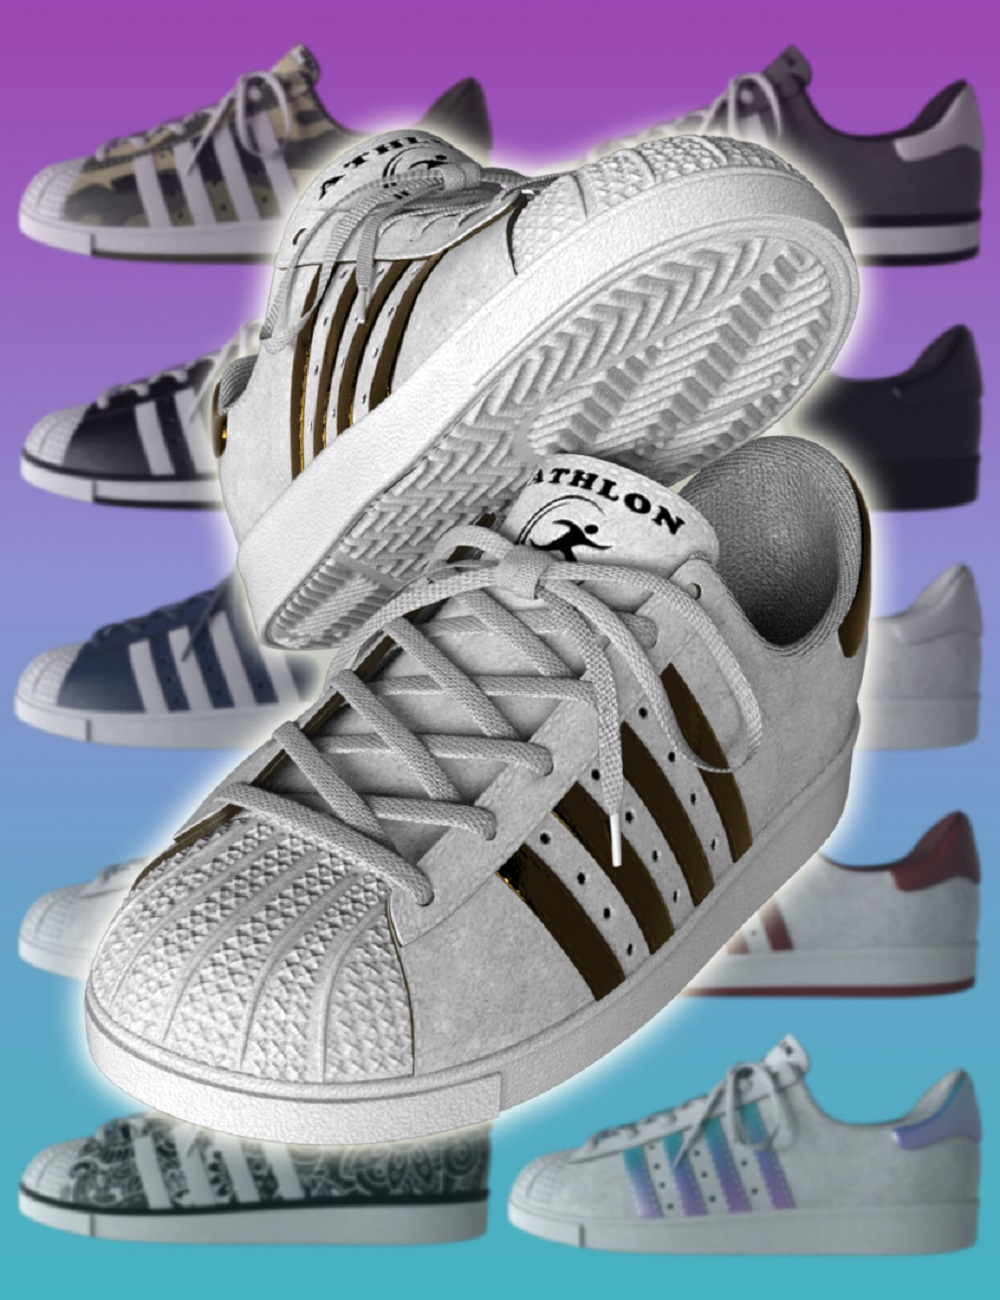 Casual Sports Sneakers for Genesis 8 by: Dogz, 3D Models by Daz 3D